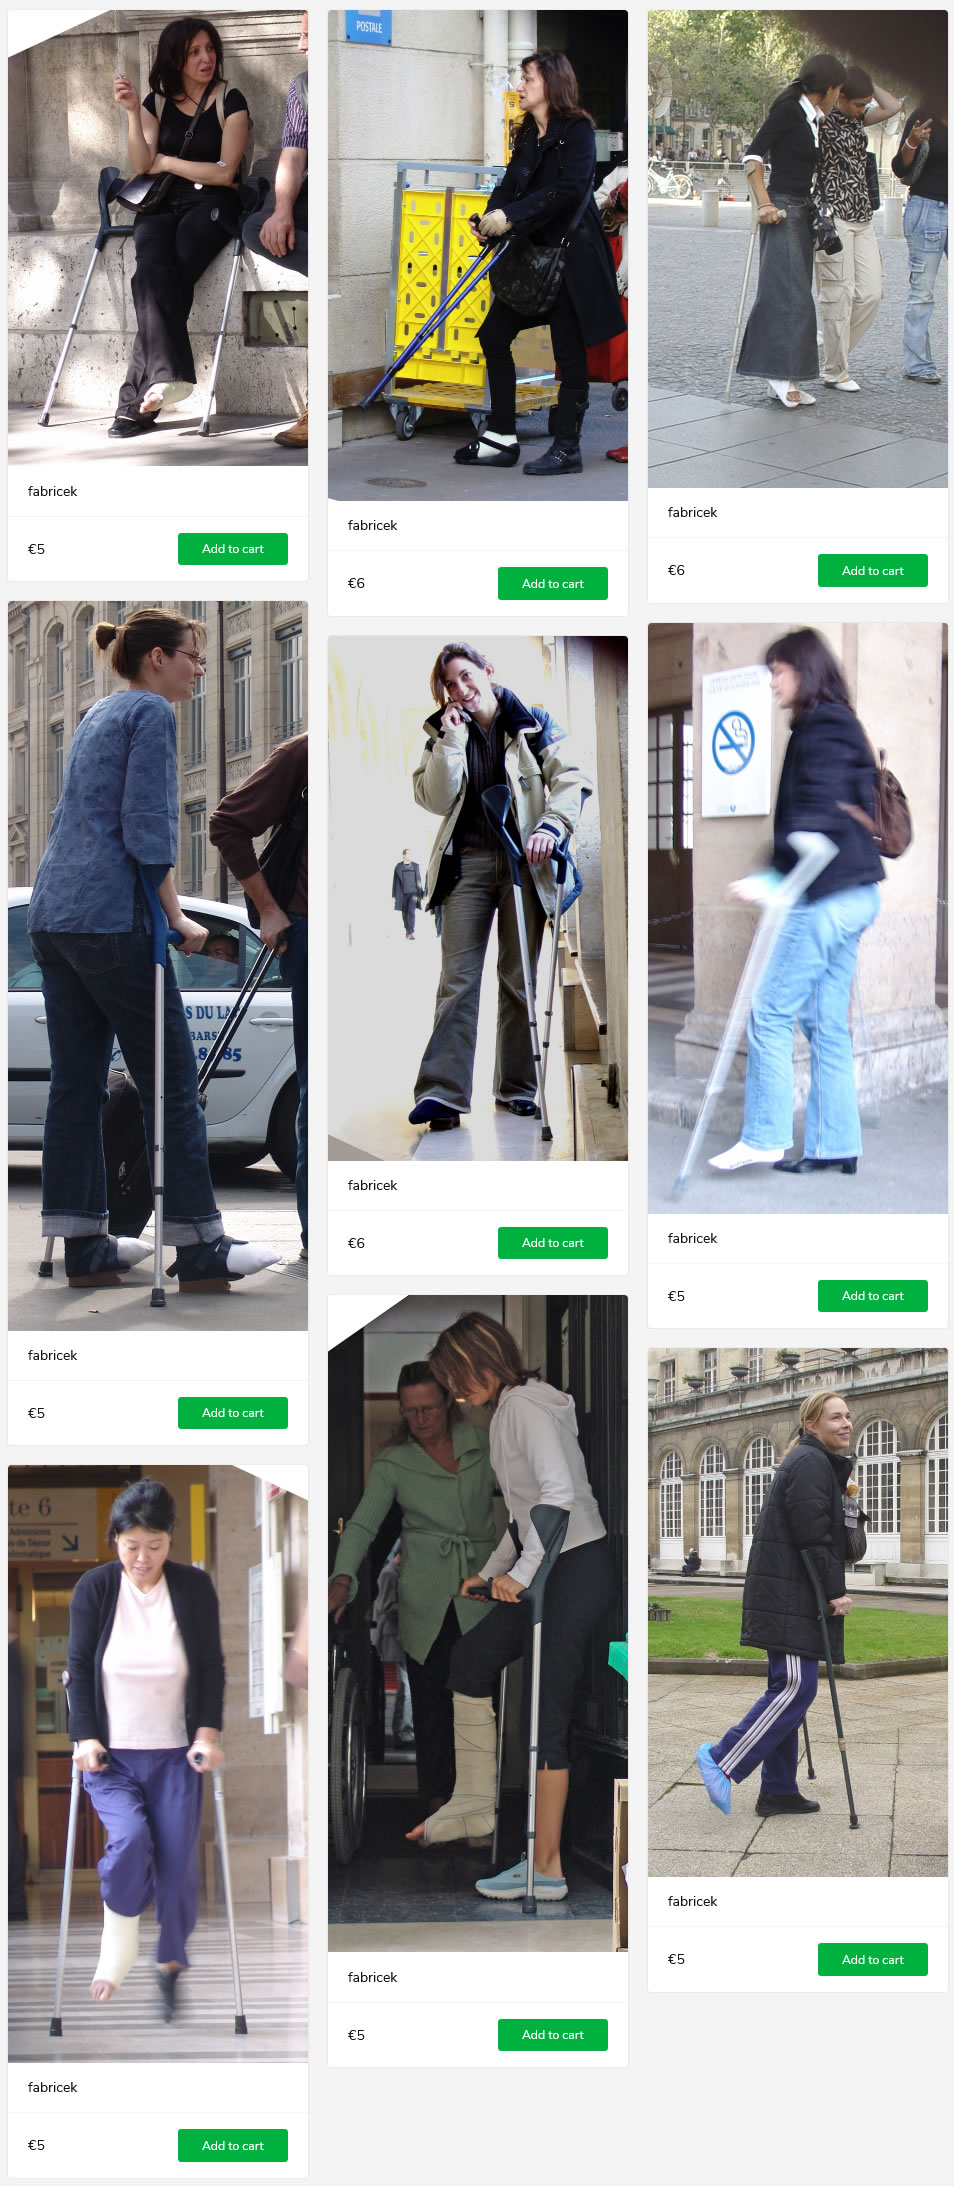 9 sets of girls and women on crutches, some with casts, same with bandages, one with both feet bandaged in special shoes...